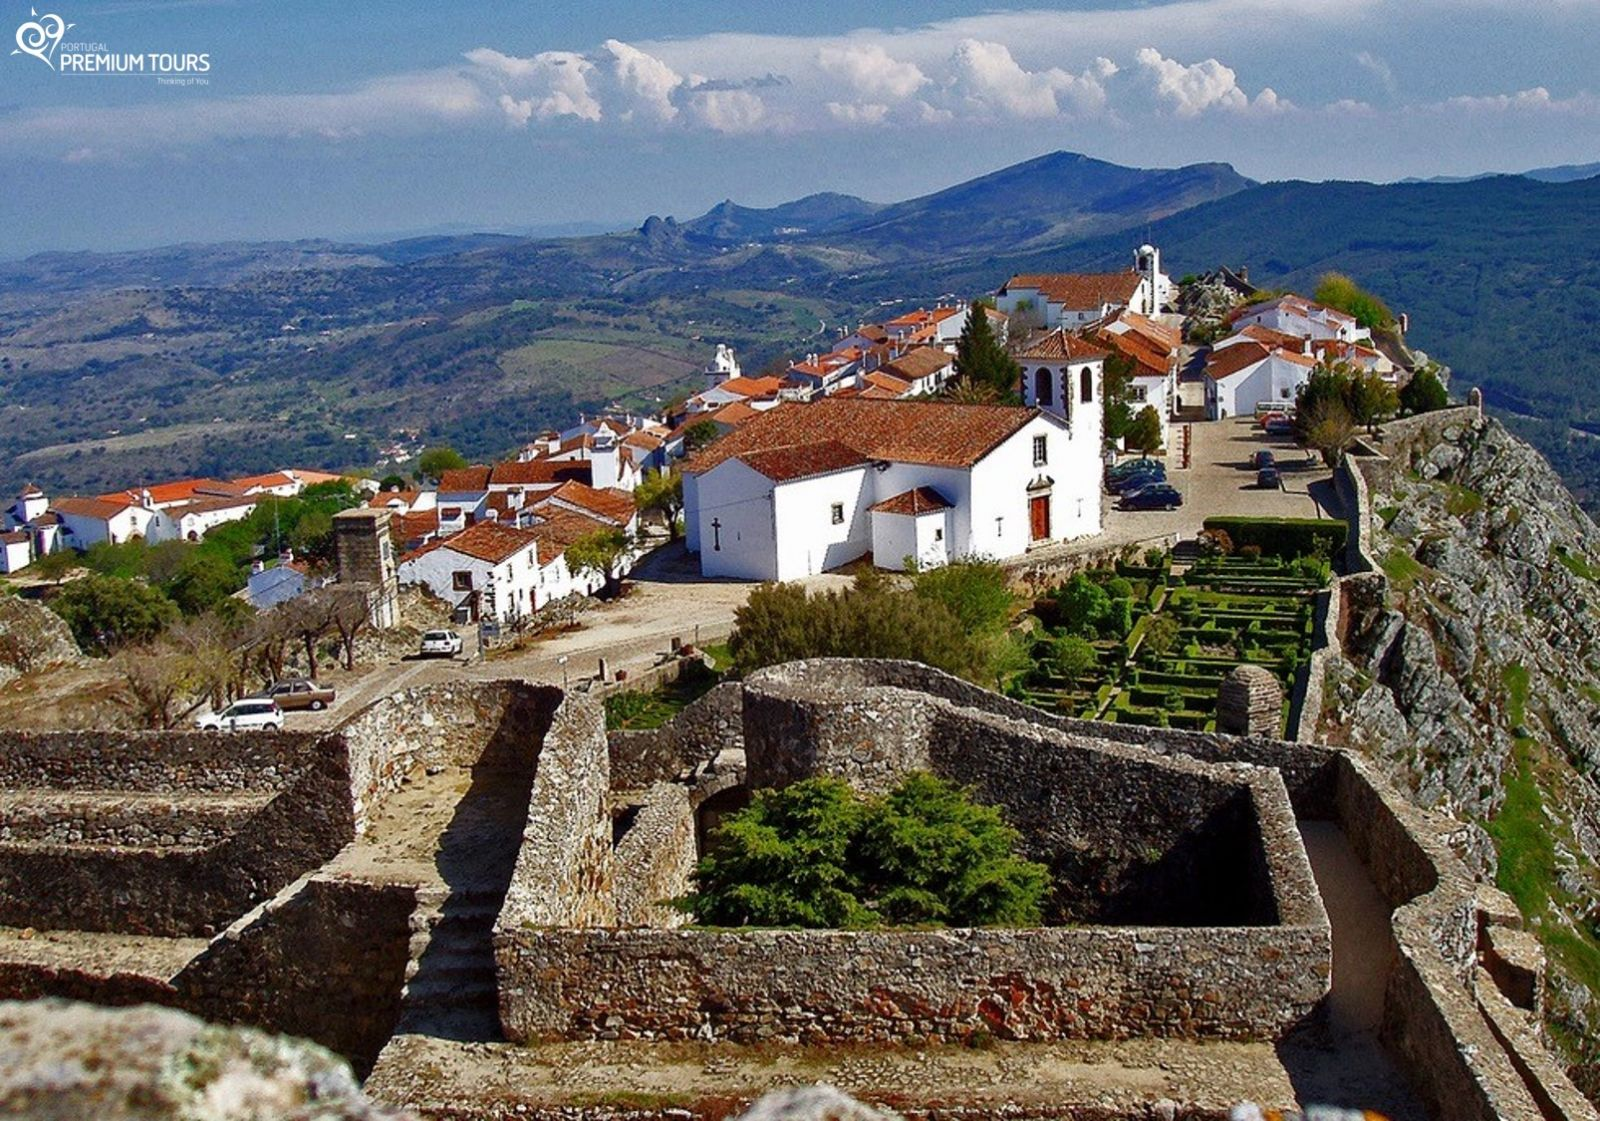 Marvao Portugal  City new picture : Discover Marvão | Portugal Premium Tours